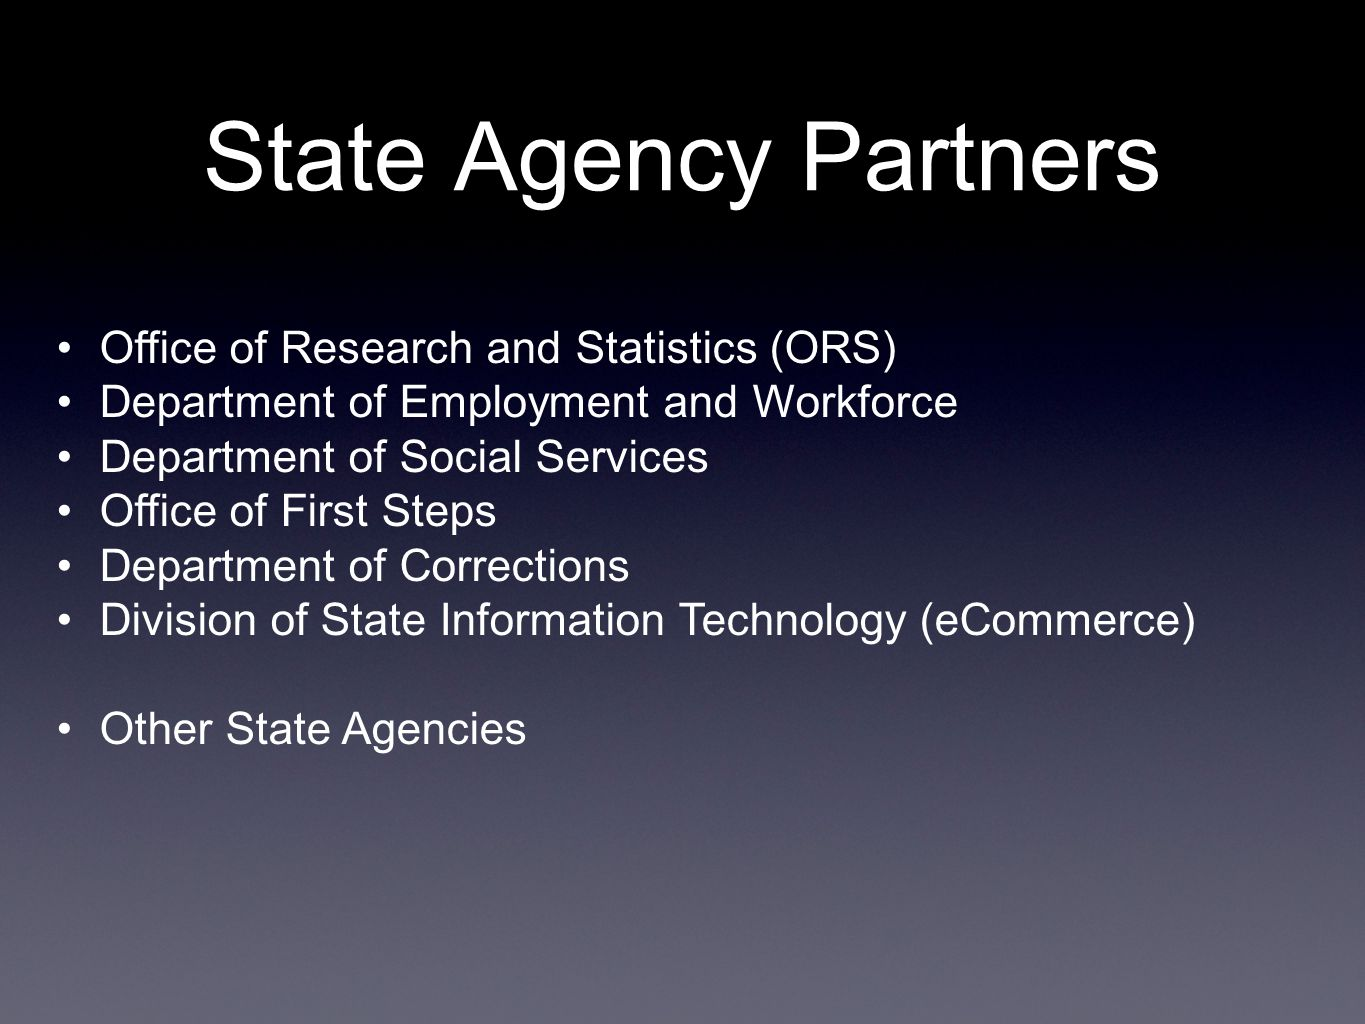 State Agency Partners Office of Research and Statistics (ORS) Department of Employment and Workforce Department of Social Services Office of First Steps Department of Corrections Division of State Information Technology (eCommerce) Other State Agencies